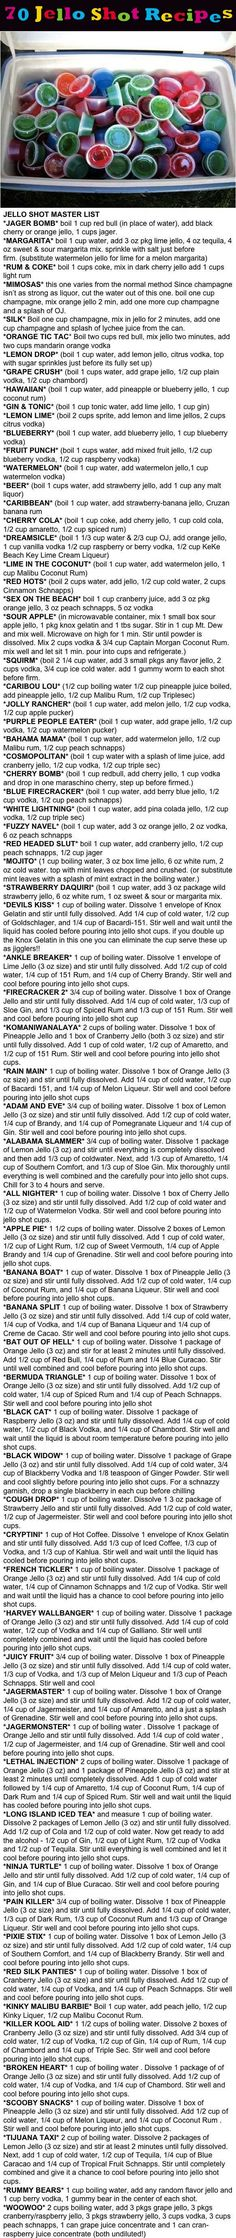 70 Jello Shot Recipes Pictures, Photos, and Images for Facebook, Tumblr…